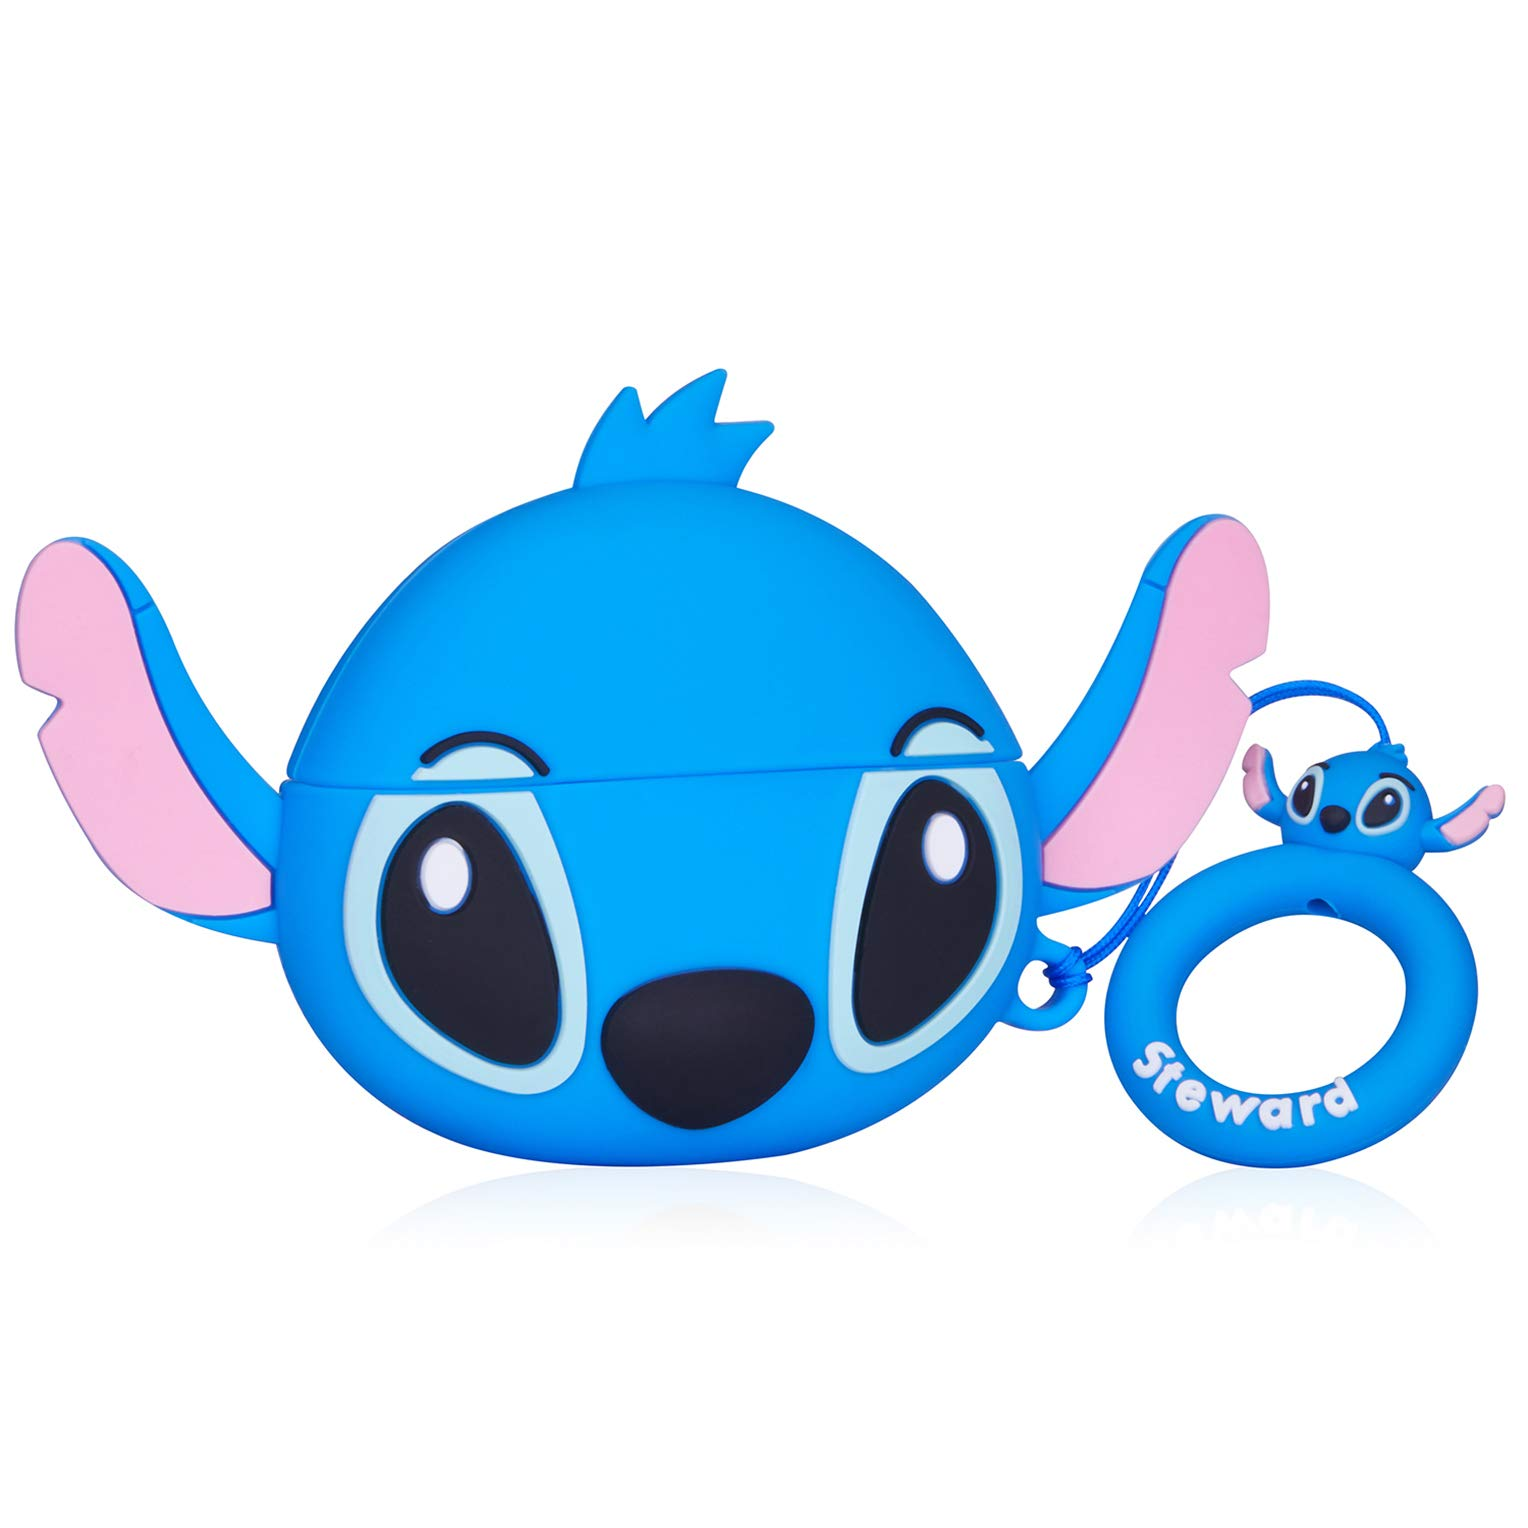 Gift-Hero Q Blue Stitch Case for Airpods Pro/for Airpods 3, Cartoon Funny Cute Design for Girls Boys Kids, Unique Carabiner Protective Fun Fashion Character Skin Soft Silicone Cover for Air pods 3